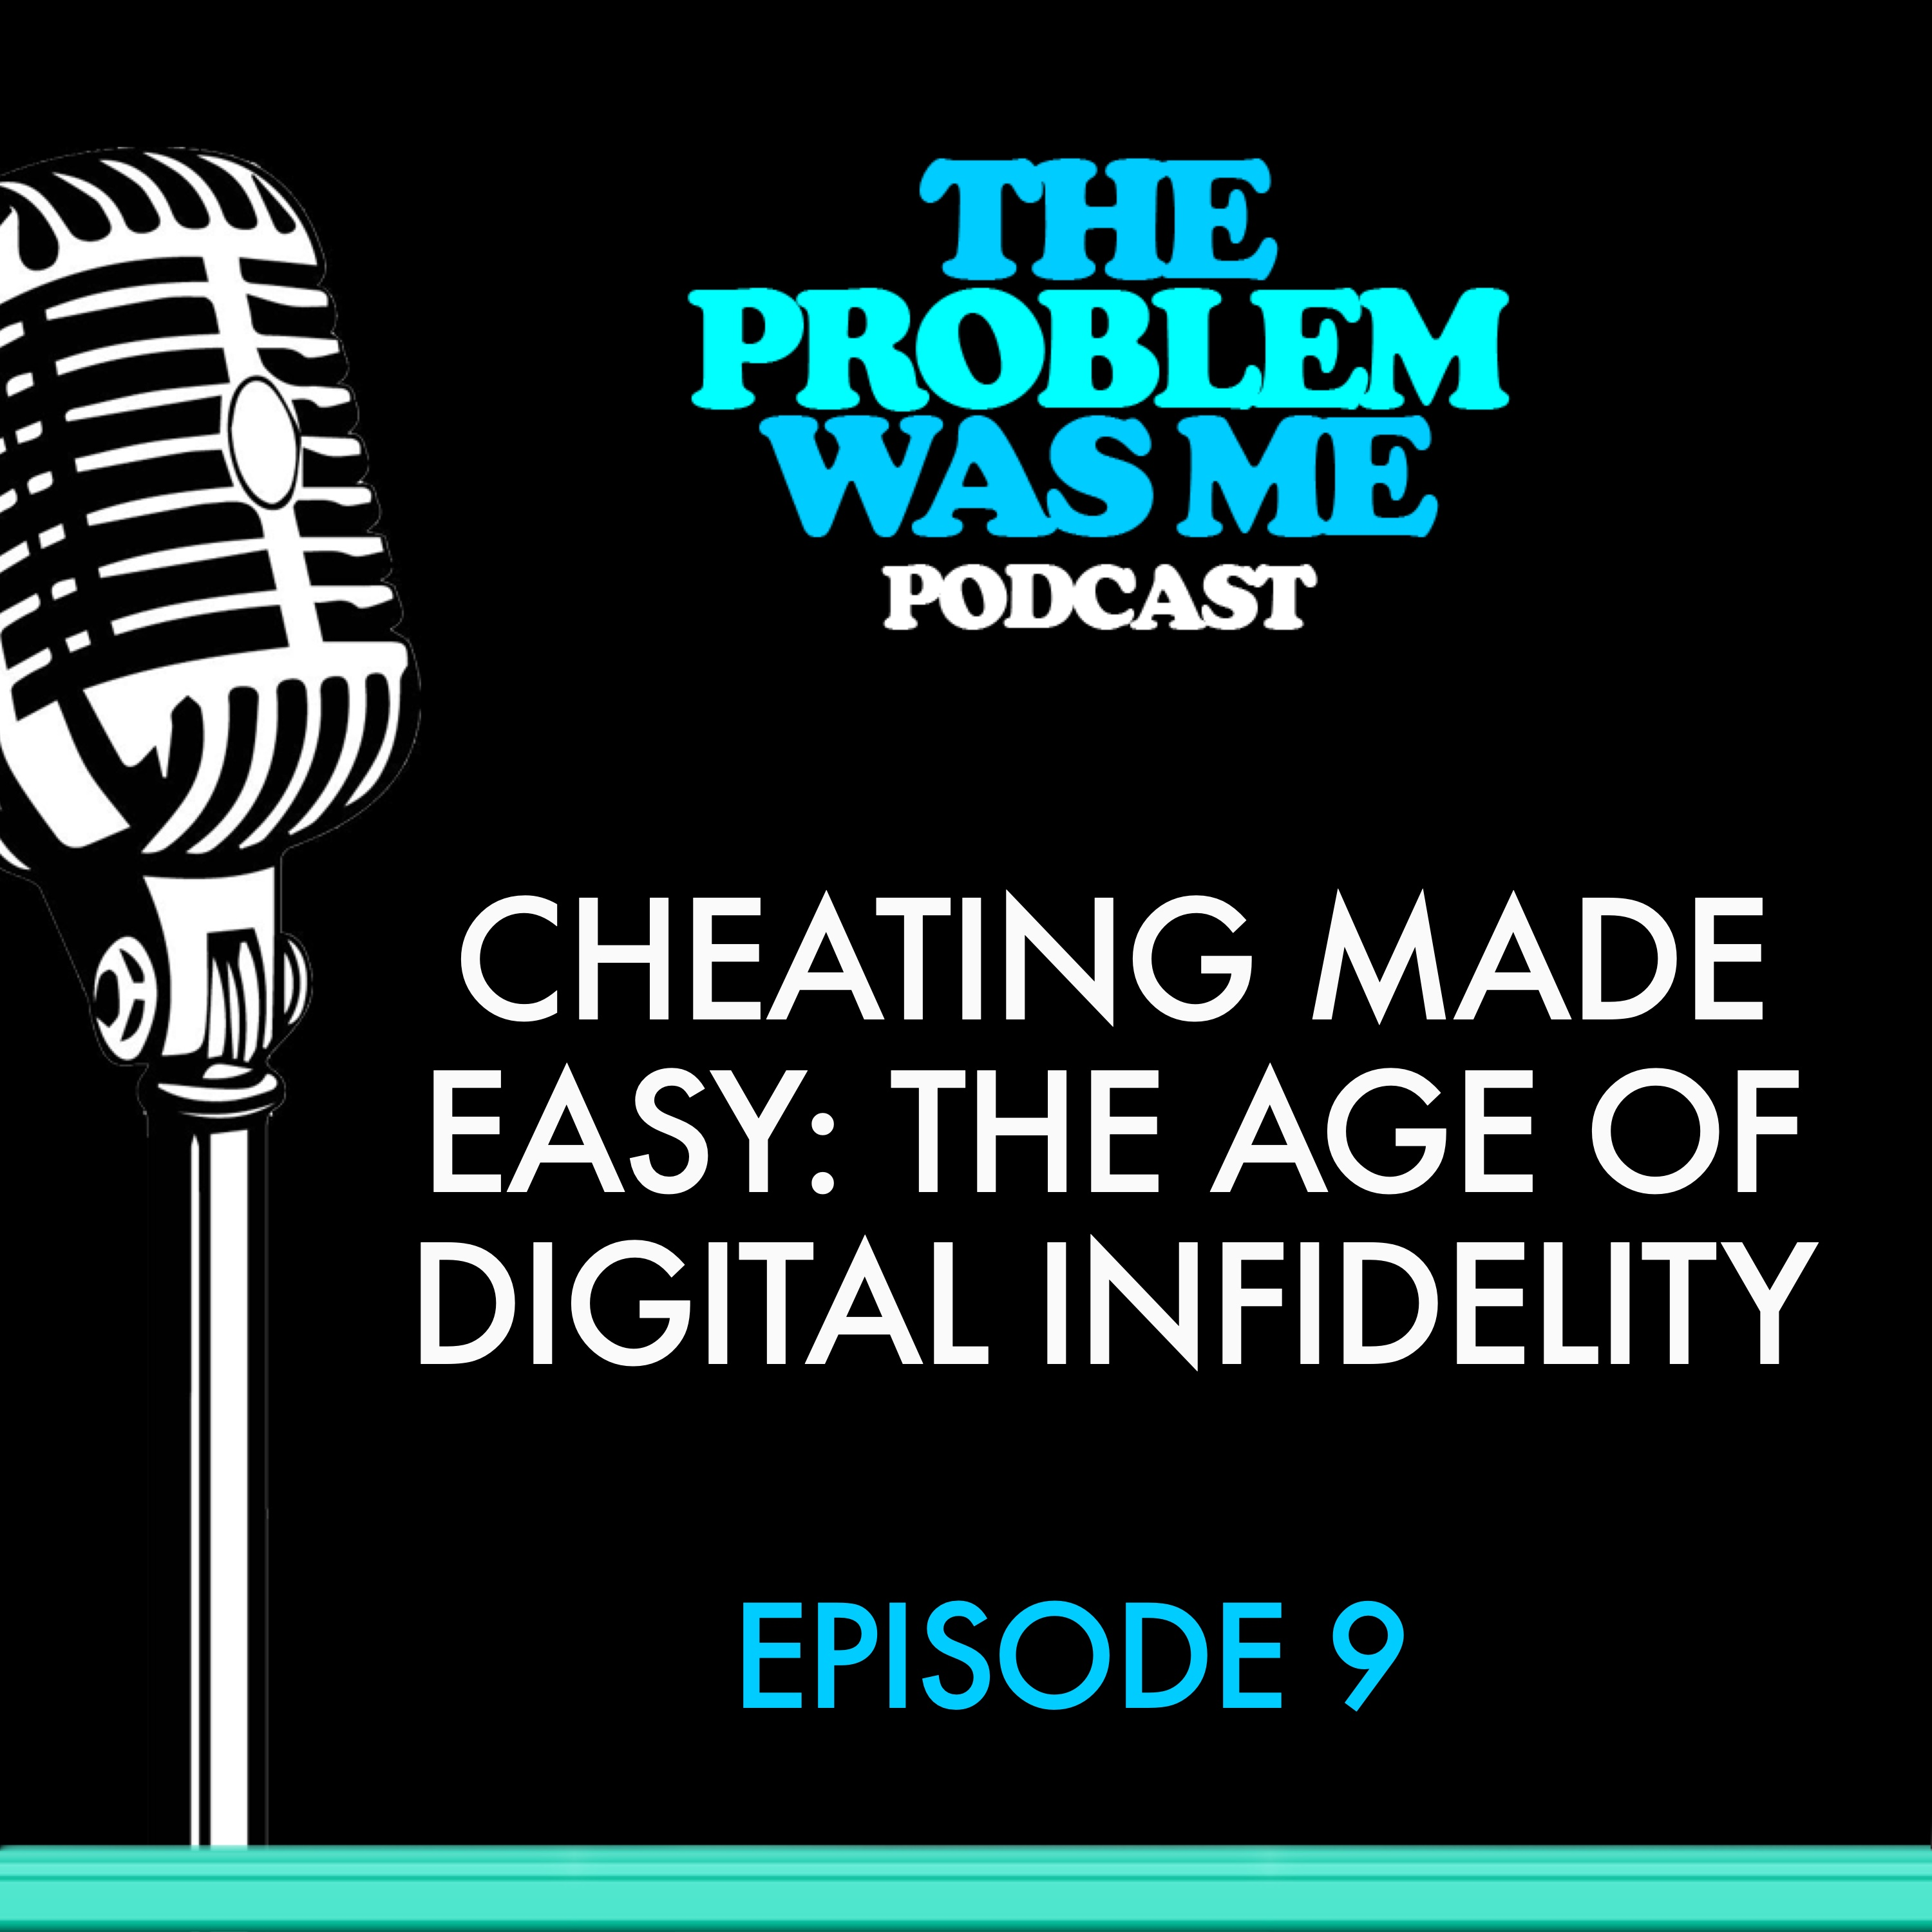 Cheating Made Easy: The Age of Digital Infidelity